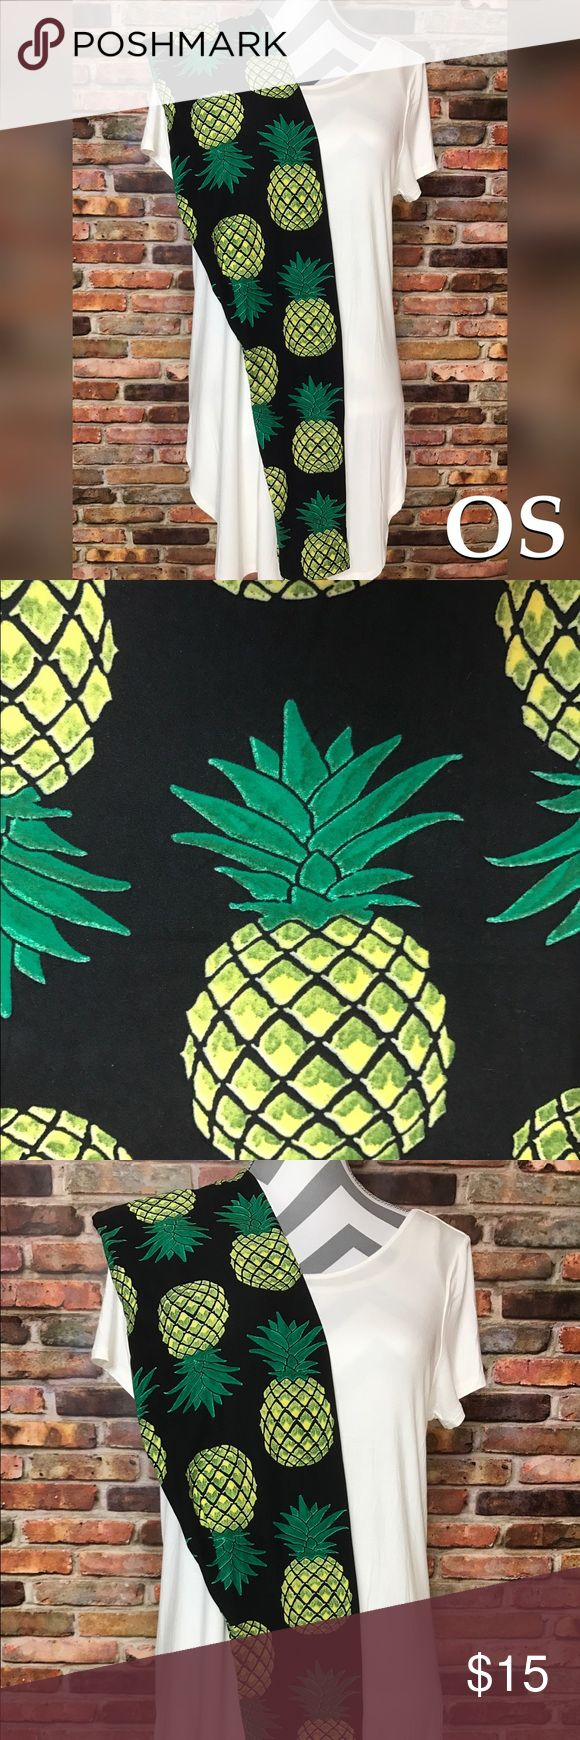 "One Size OS Classic Pineapple Leggings Brand new with tags Buttery soft brushed poly/spandex blend  Full Length Elastic high waistband (does not fall down) One Size OS: fits sizes: 2 - 12/14  Price is firm unless bundled.   Bundling also saves on shipping 😉   ~This is our own brand Fab Not Drab~  Same buttery softness as Lularoe and Agnes & Dora for a much more affordable price ❤️  🌹PLEASE ONLY SELECT THE SIZE THAT SAYS ""OS""🌹  #leggings Fabnotdrab.com Pants Leggings"